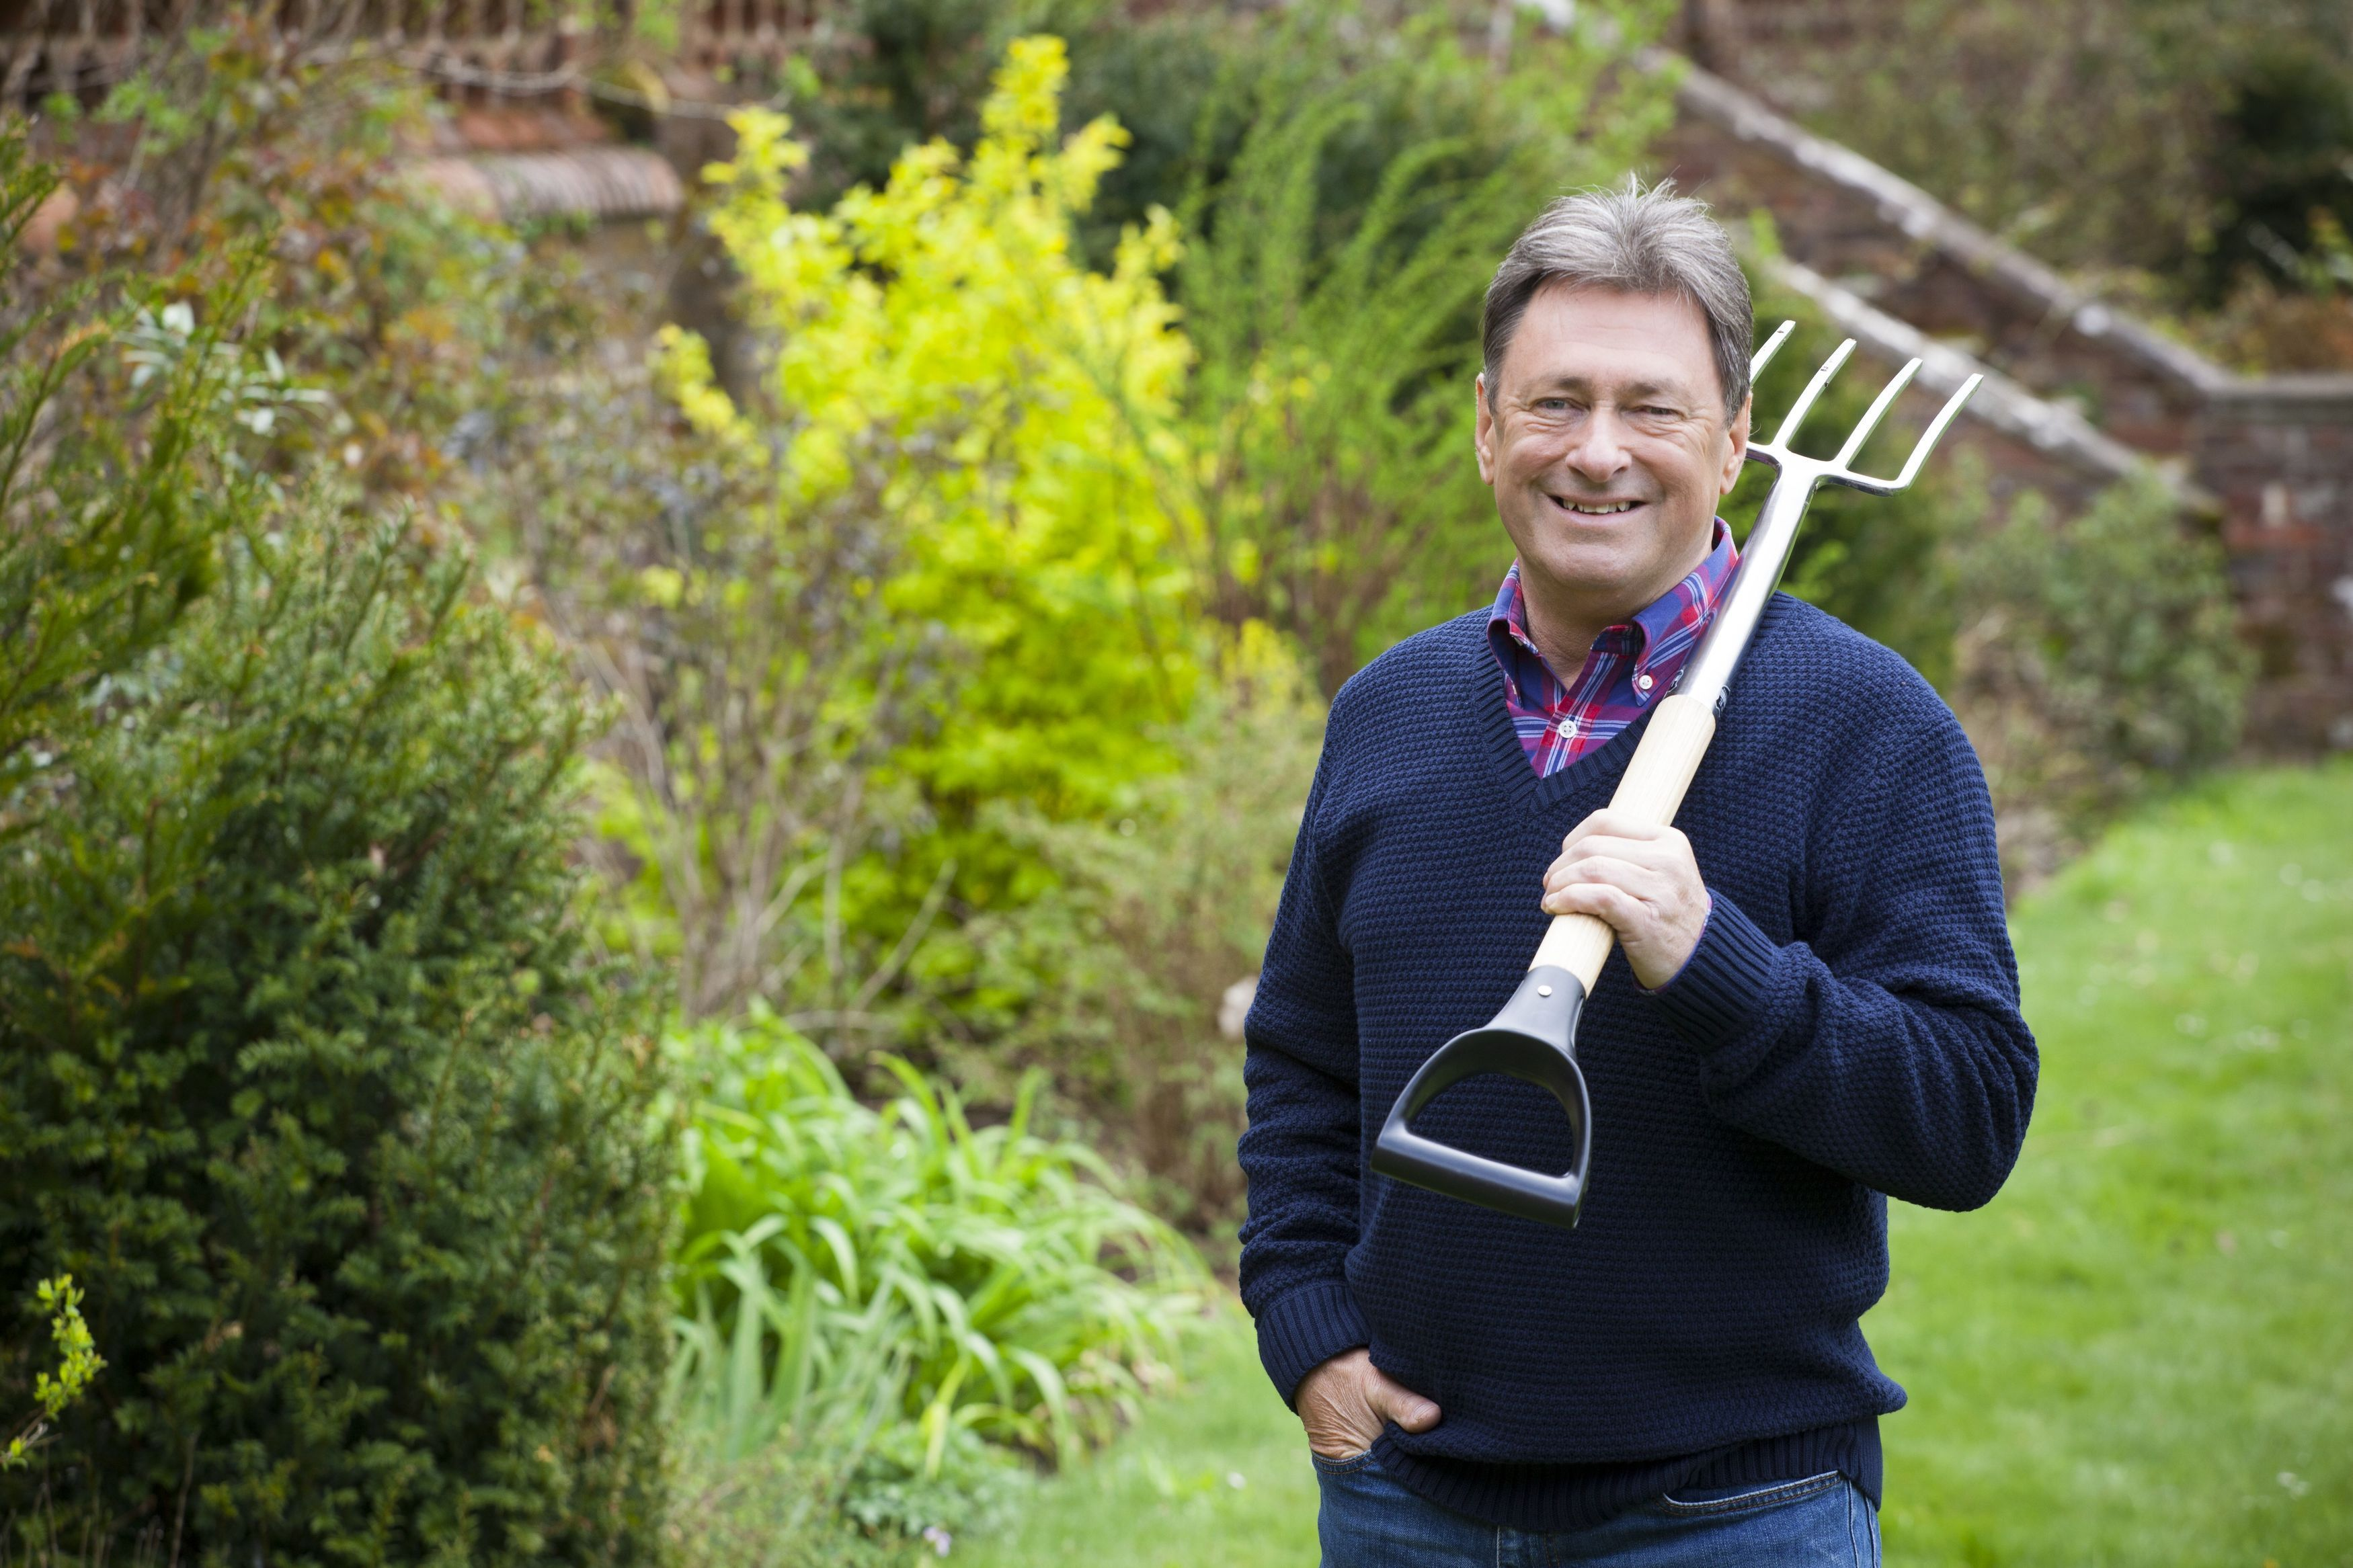 A blooming great 50th anniversary for Alan Titchmarsh